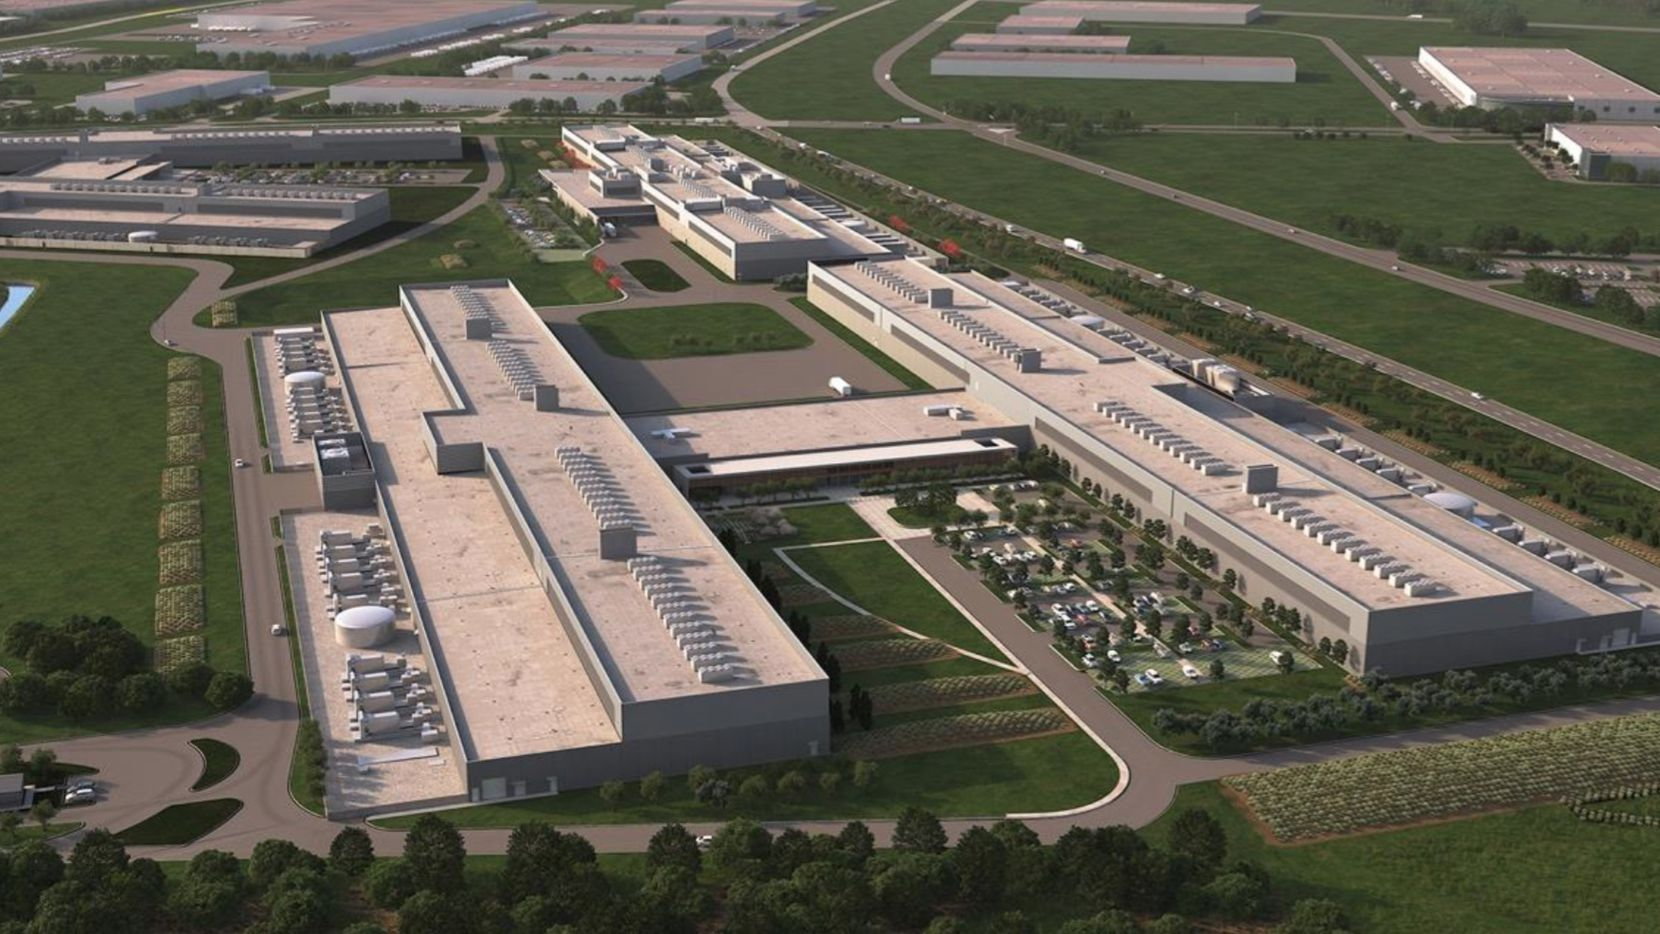 Facebook started work on this 150-acre North Fort Worth data center campus in 2015.